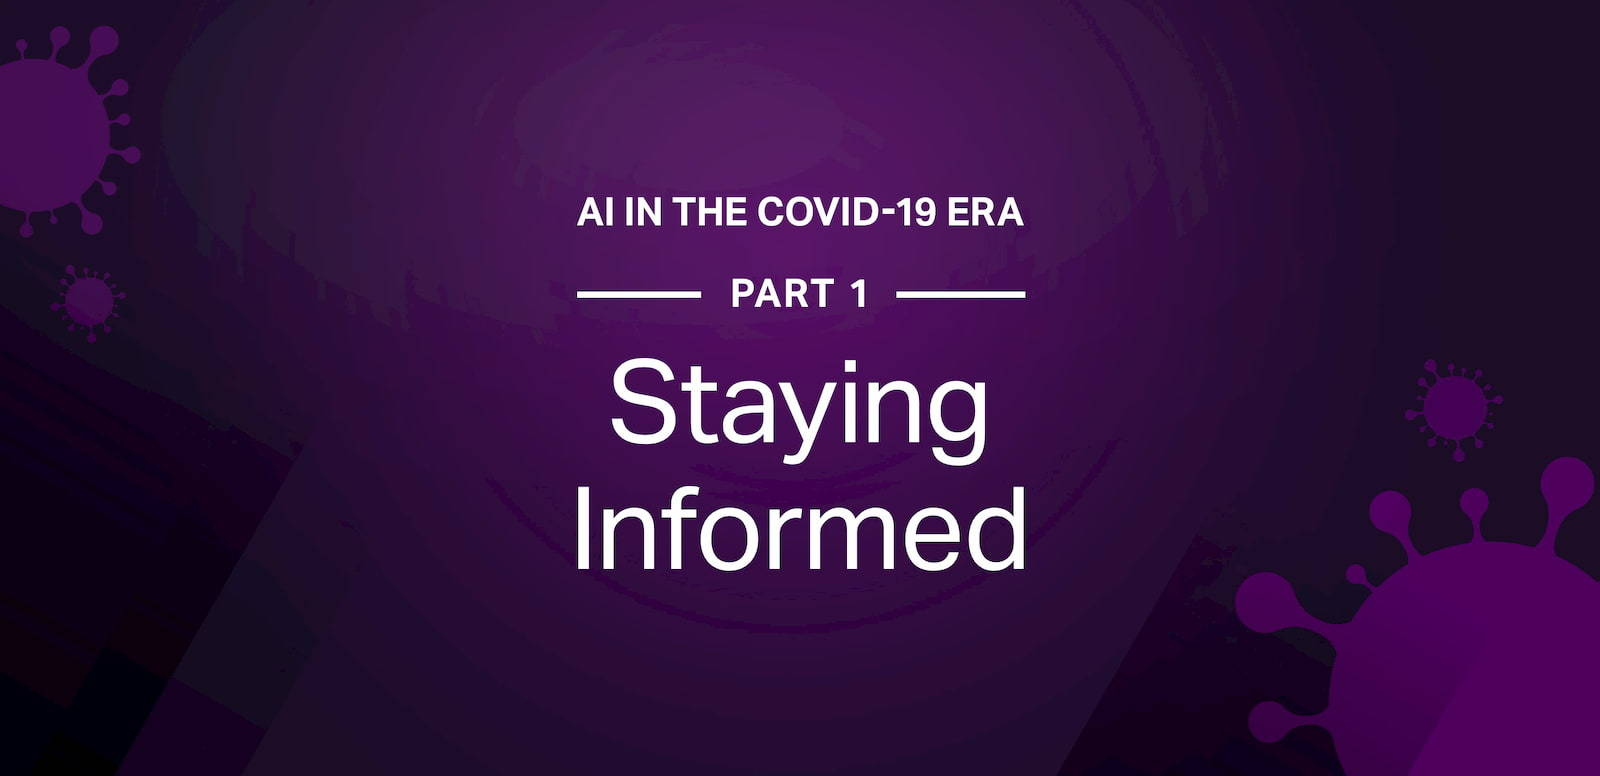 AI in the COVID-19 era pt. 1: Staying informed and maintaining business continuity